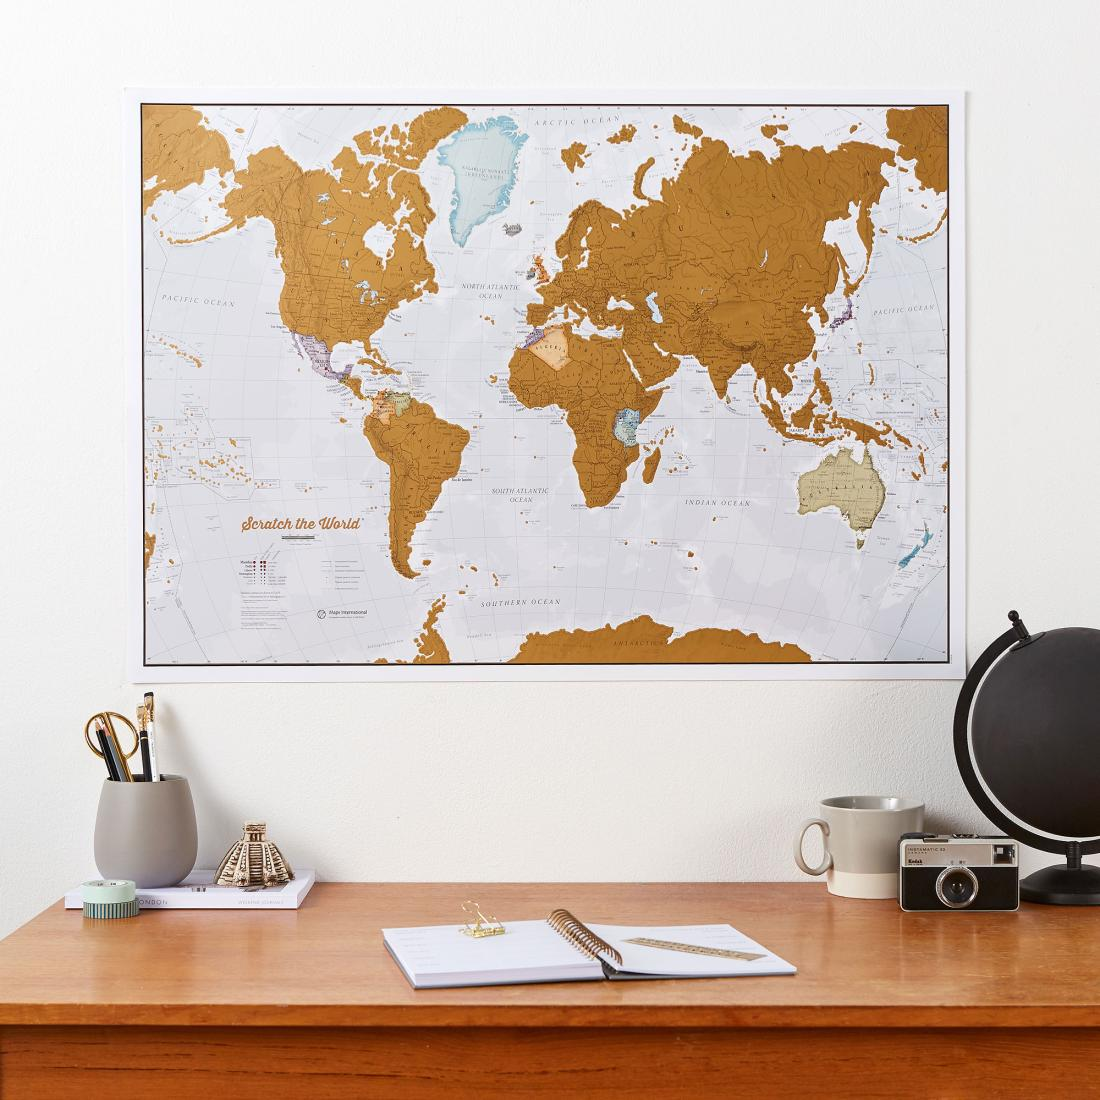 World maps evmaplink scratch the world by maps international ltd gumiabroncs Image collections